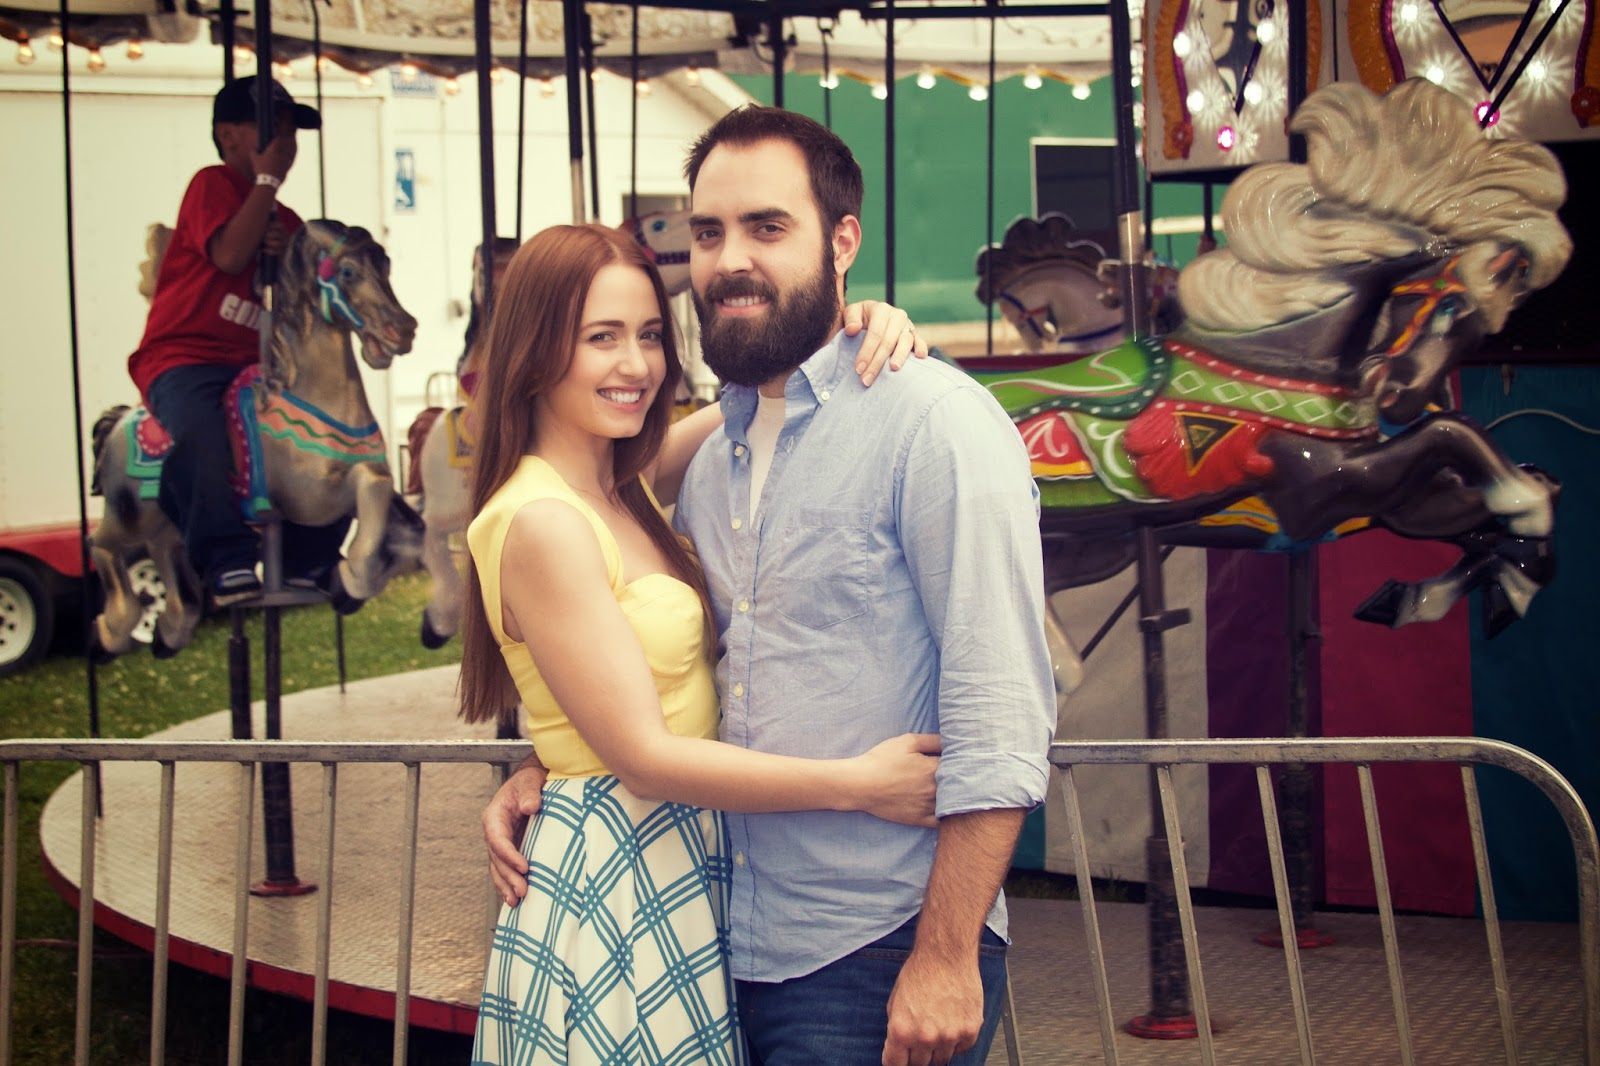 Ingham County Fair Engagement Session. Photo by Tammy Sue Allen Photography.